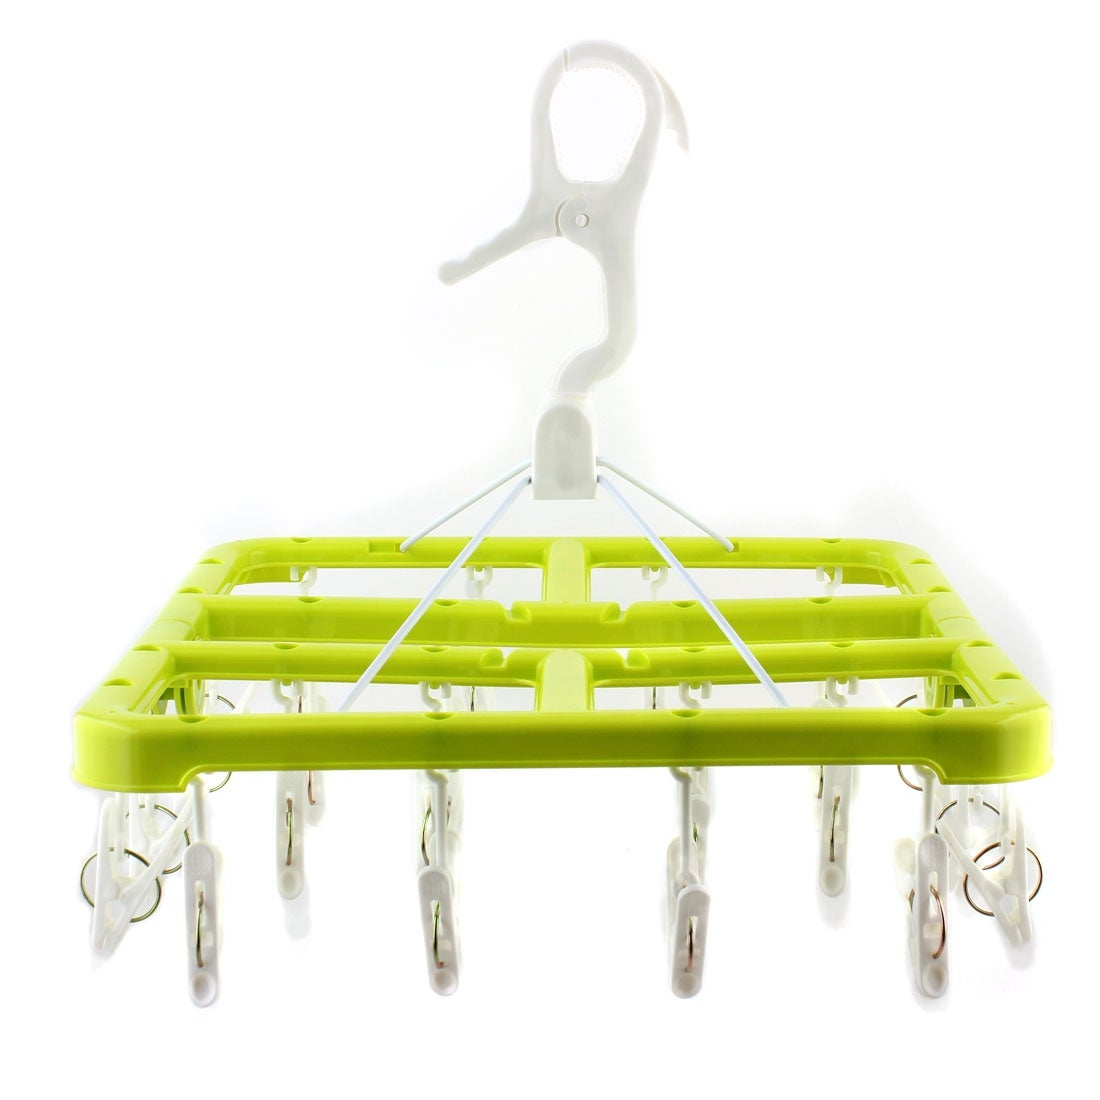 Household Plastic Square 24 Clips Underware Clothes Laundry Hanger Light Green